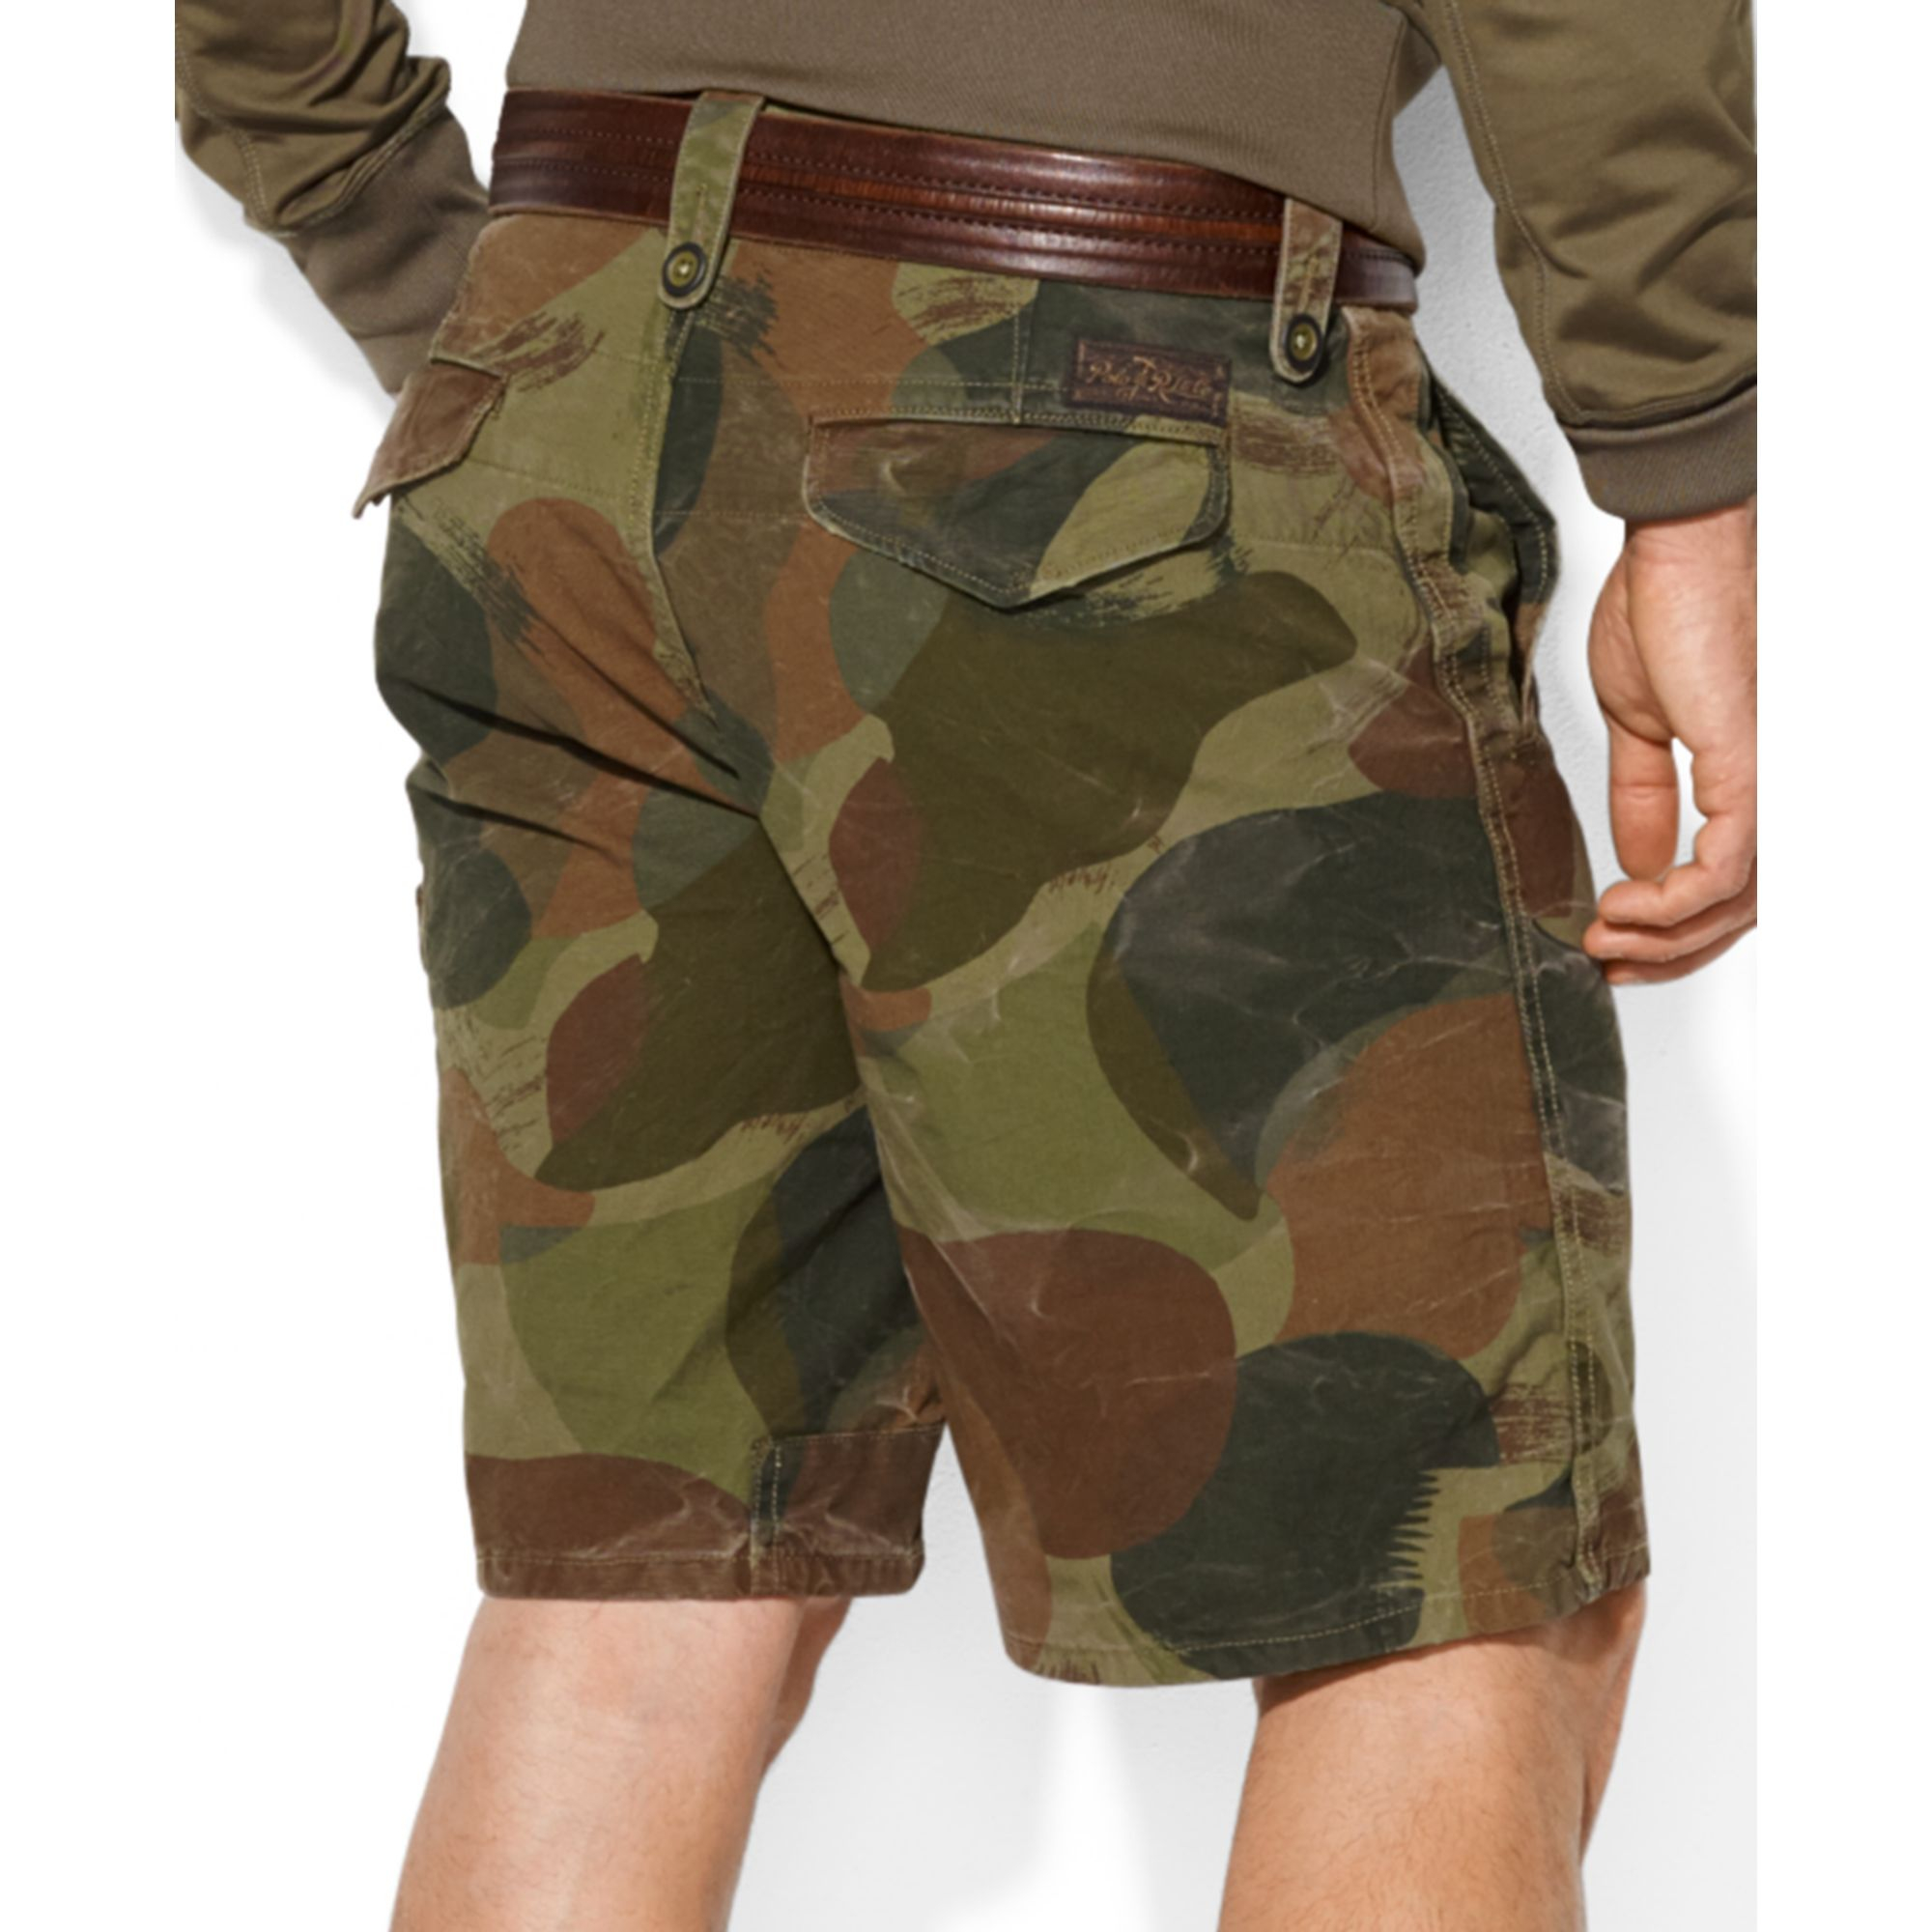 printed shorts - Green Polo Ralph Lauren